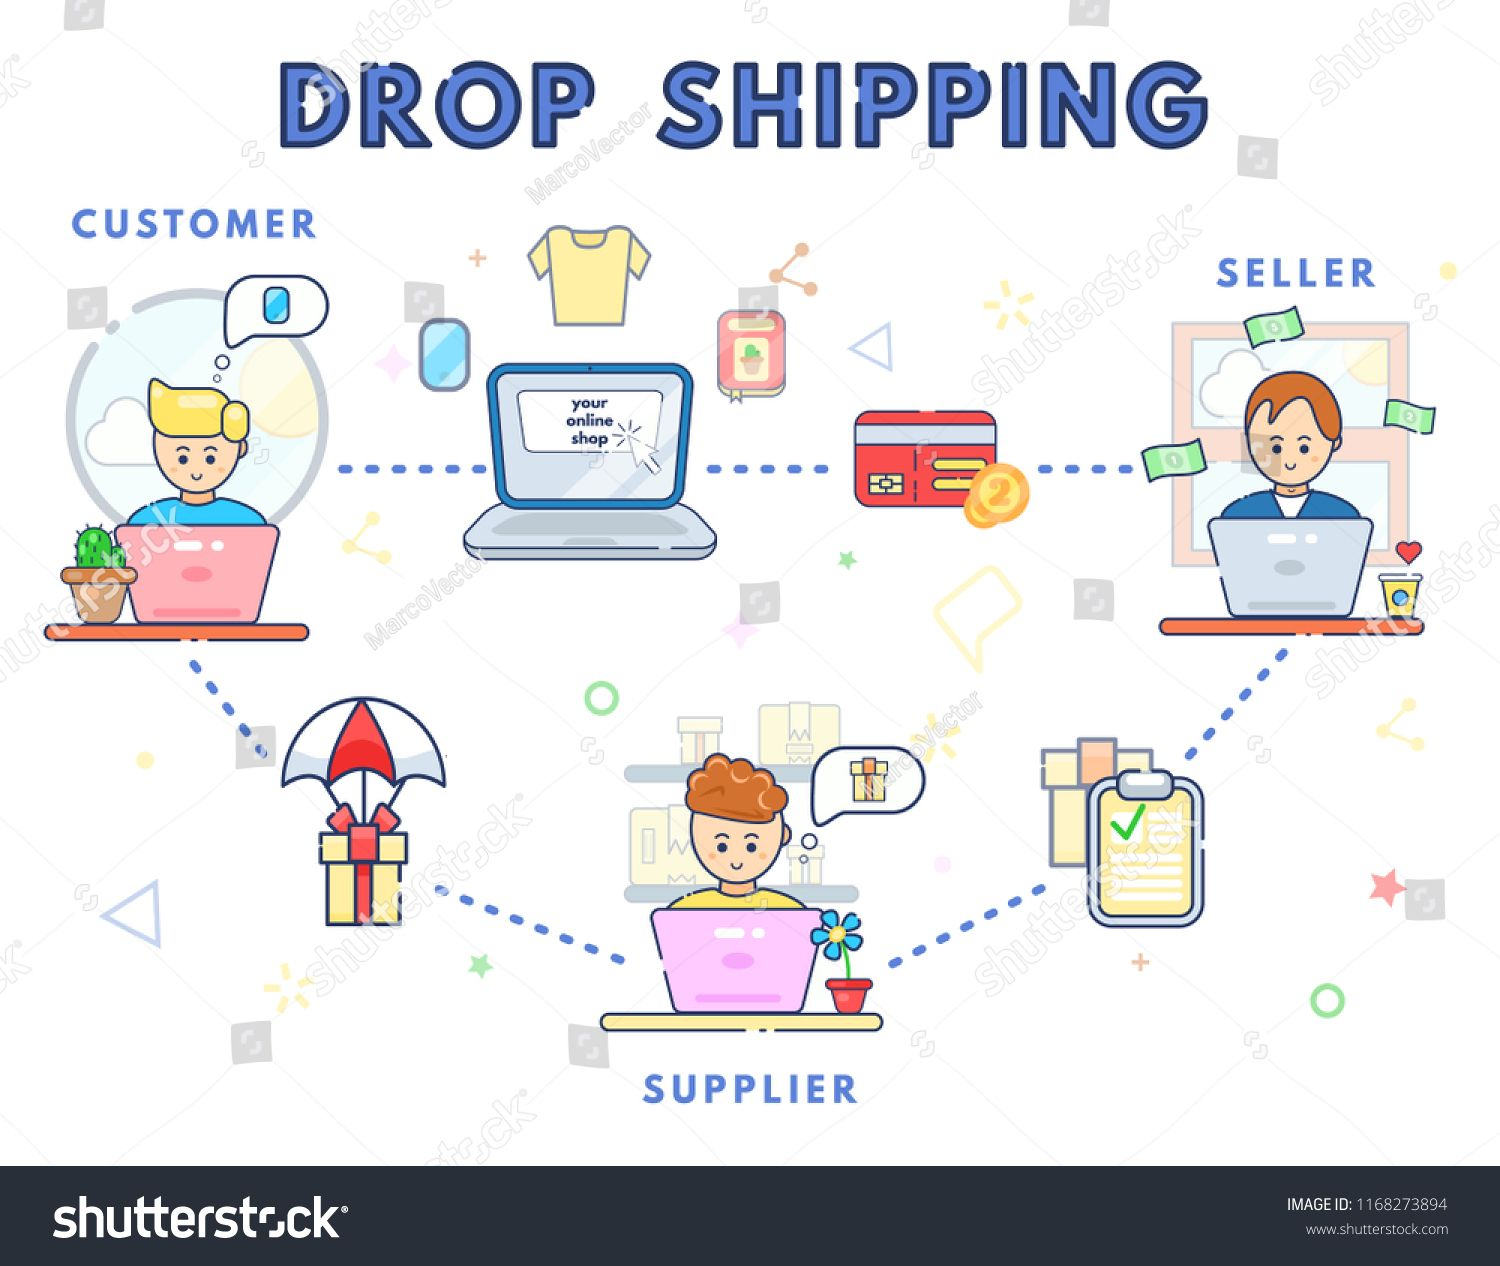 How drop shipping works concept  Online business sale